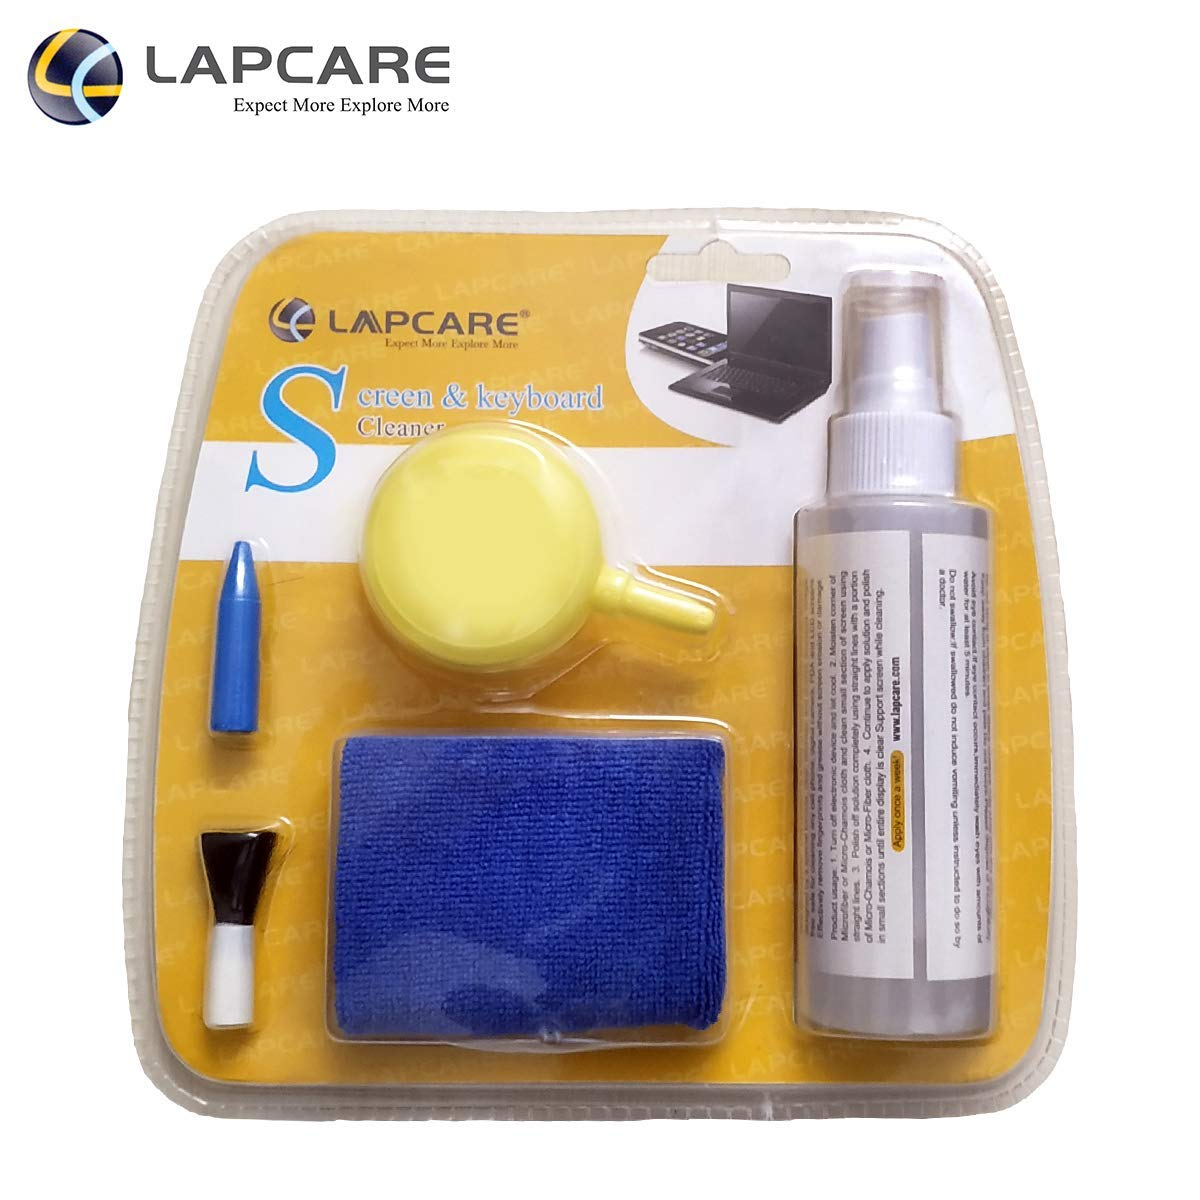 Lapcare 5-in-1 Screen Cleaning Kit with Suction Balloon product image